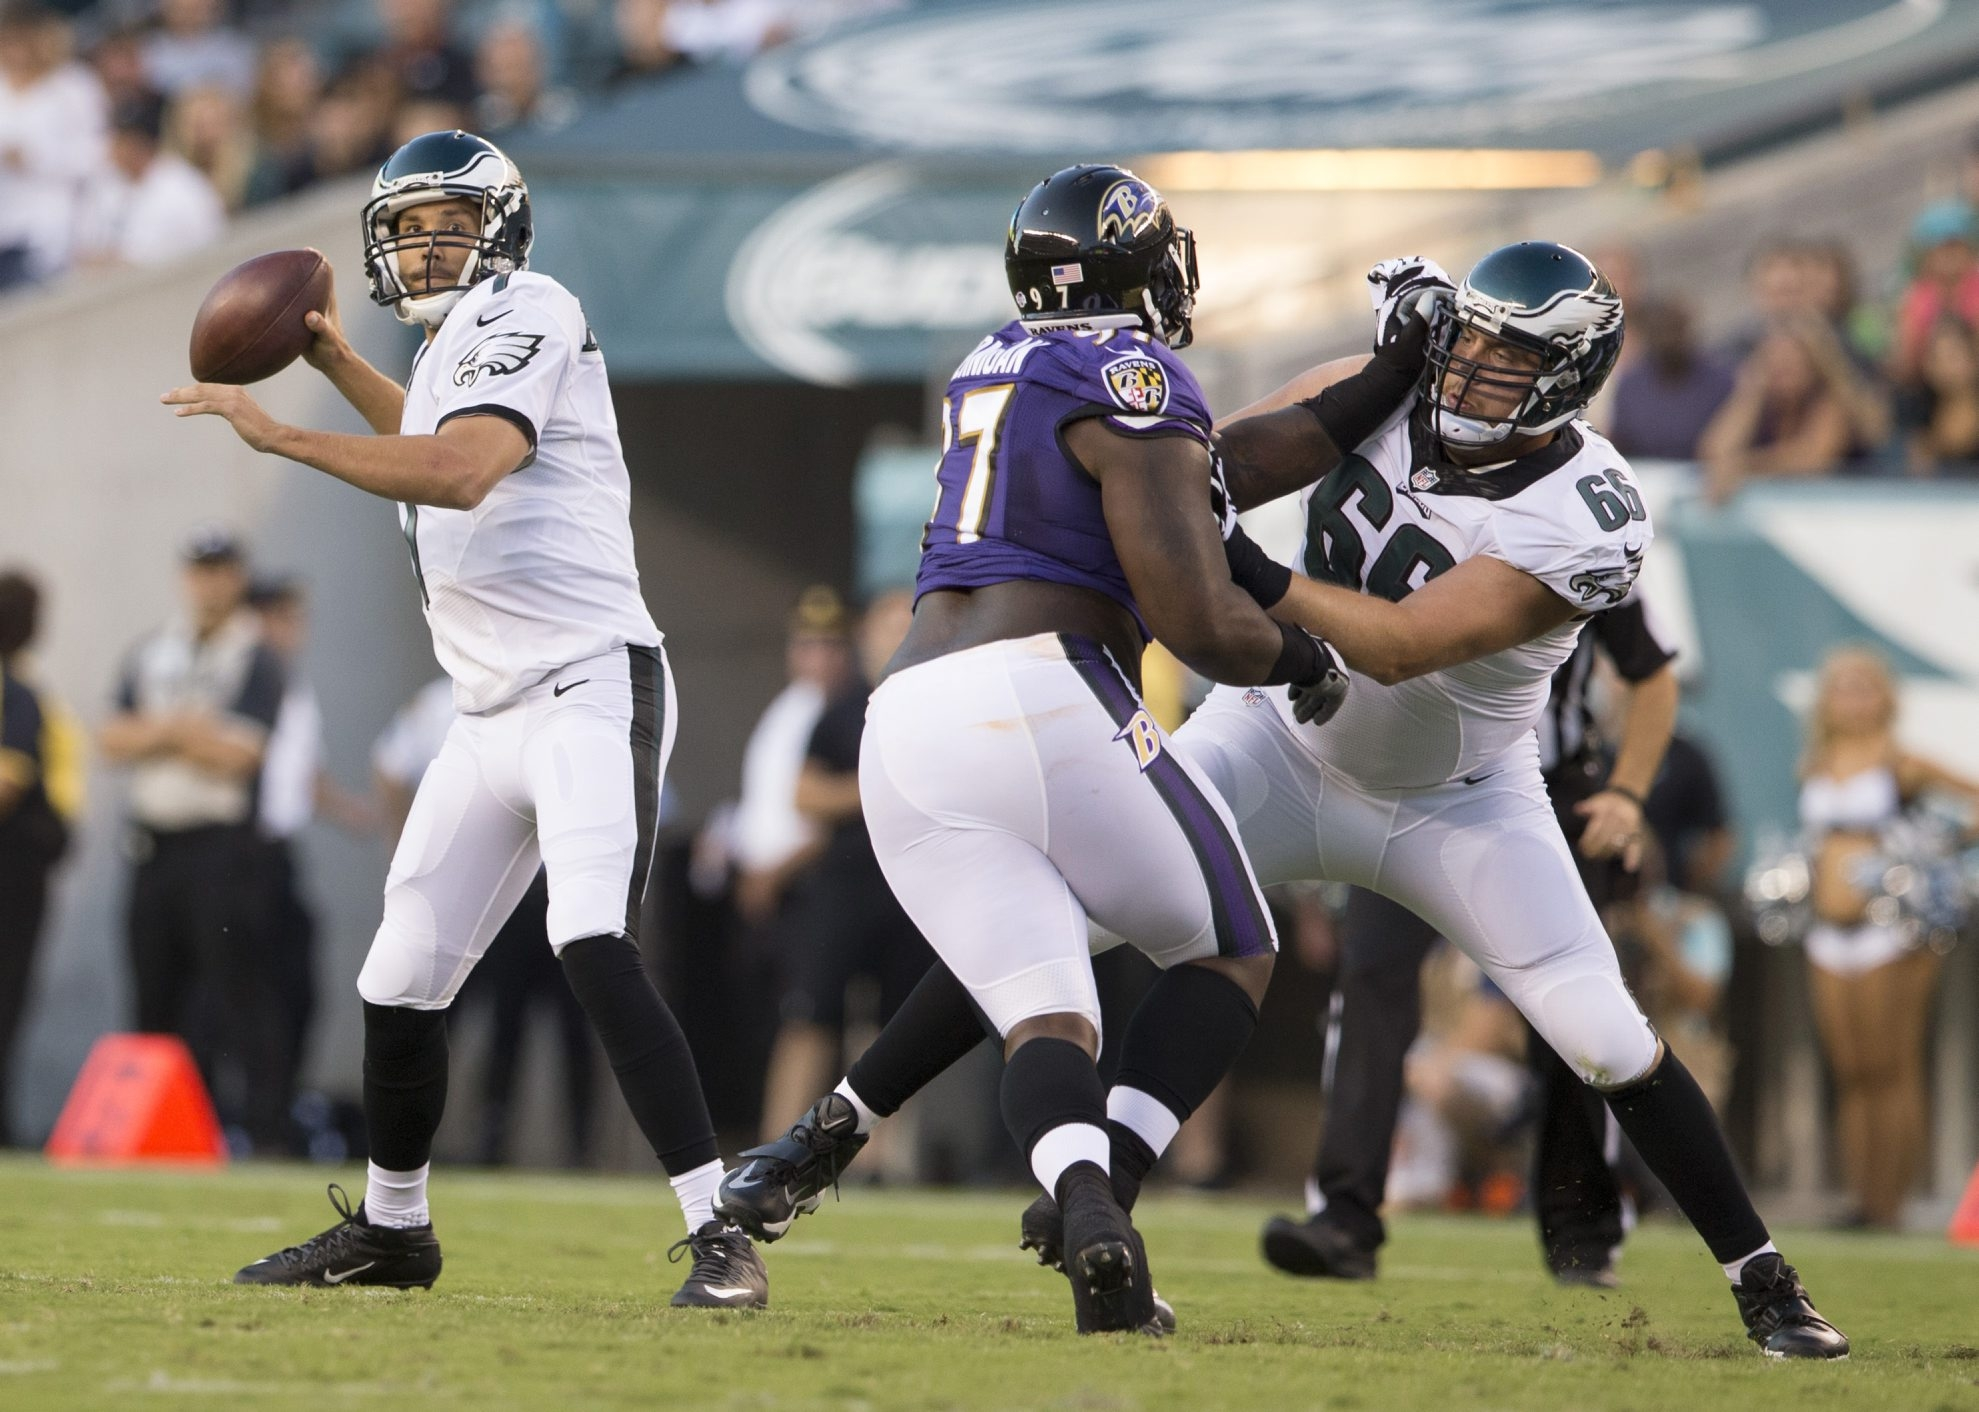 Sam Bradford could find himself in free-agent heaven if he stays health and puts up numbers with the Eagles